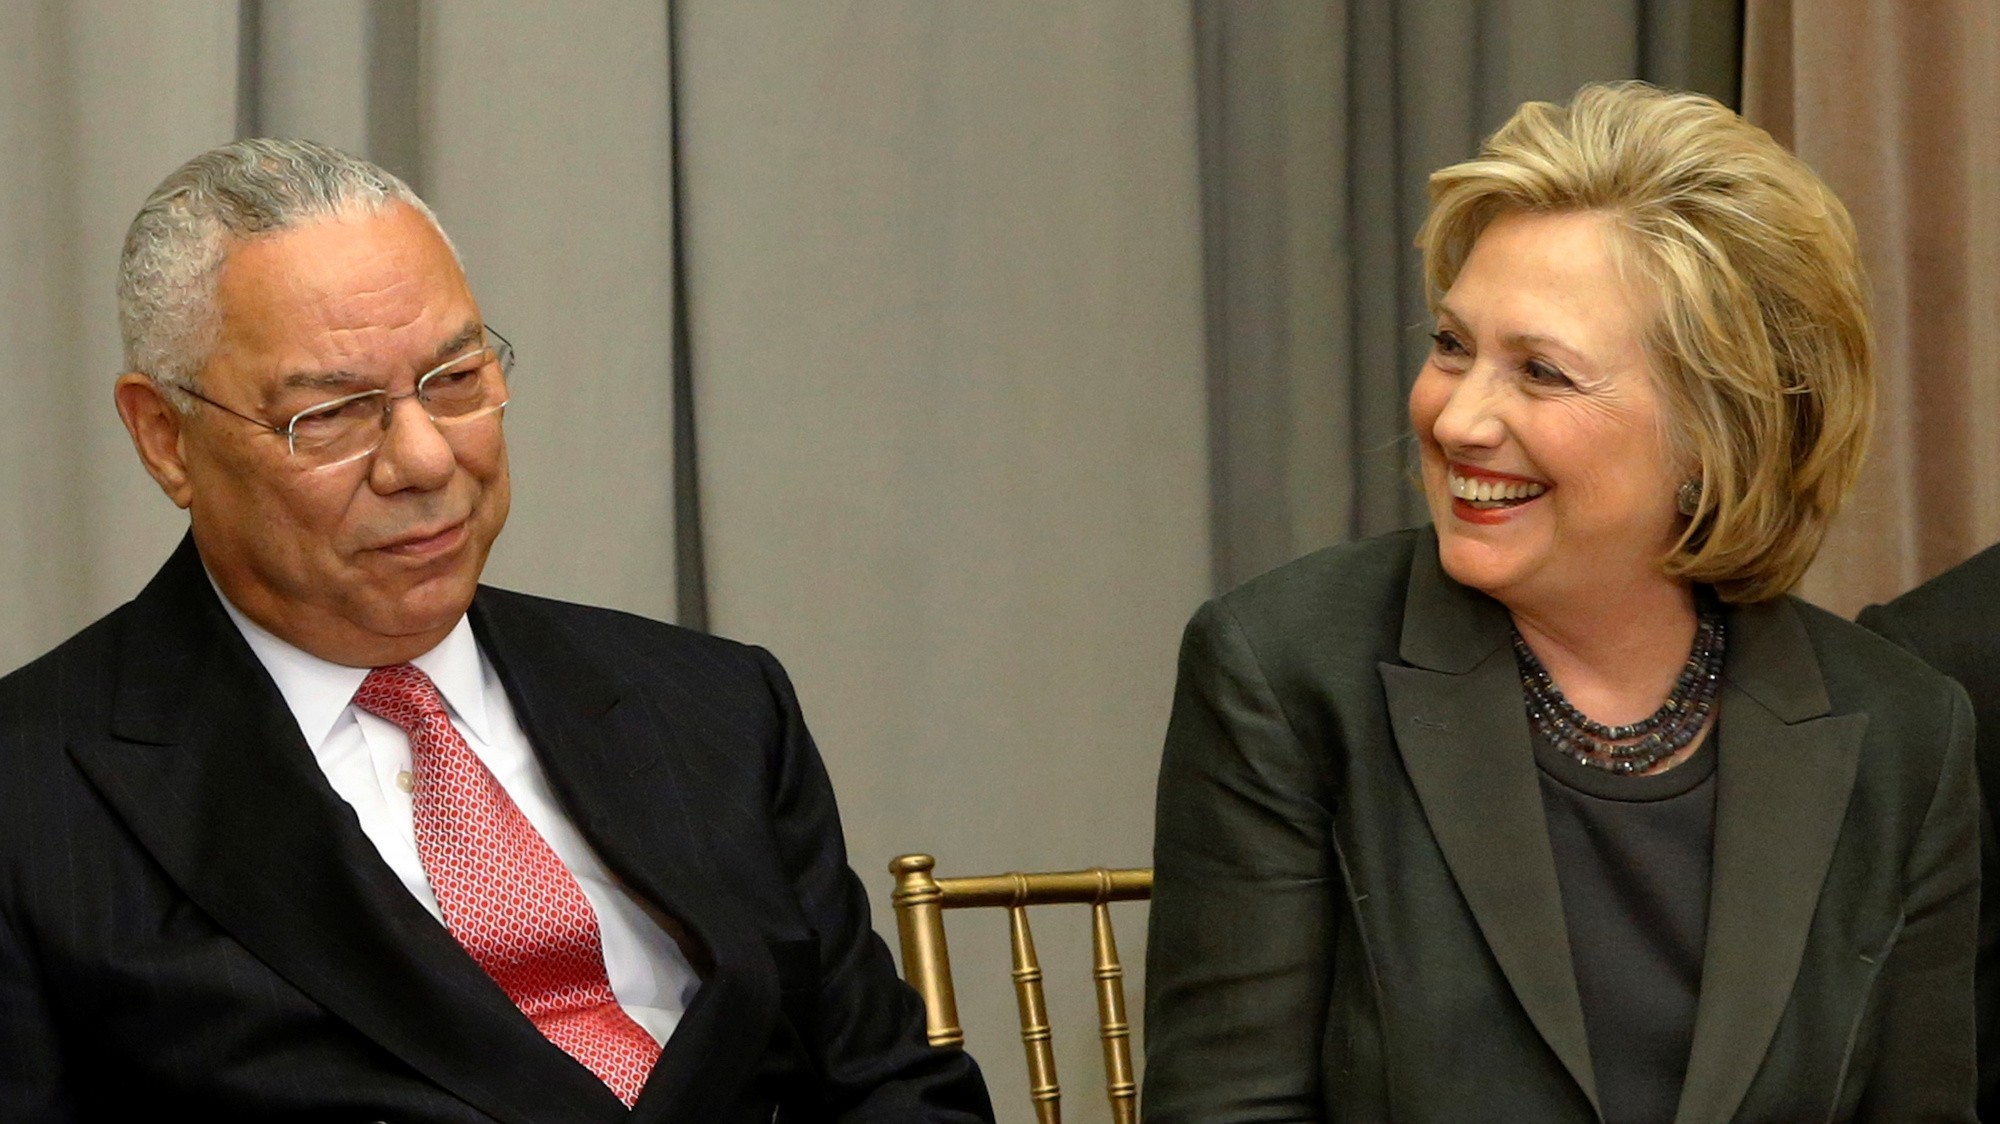 Colin Powell insults Clinton and calls Trump 'national disgrace' in leaked emails